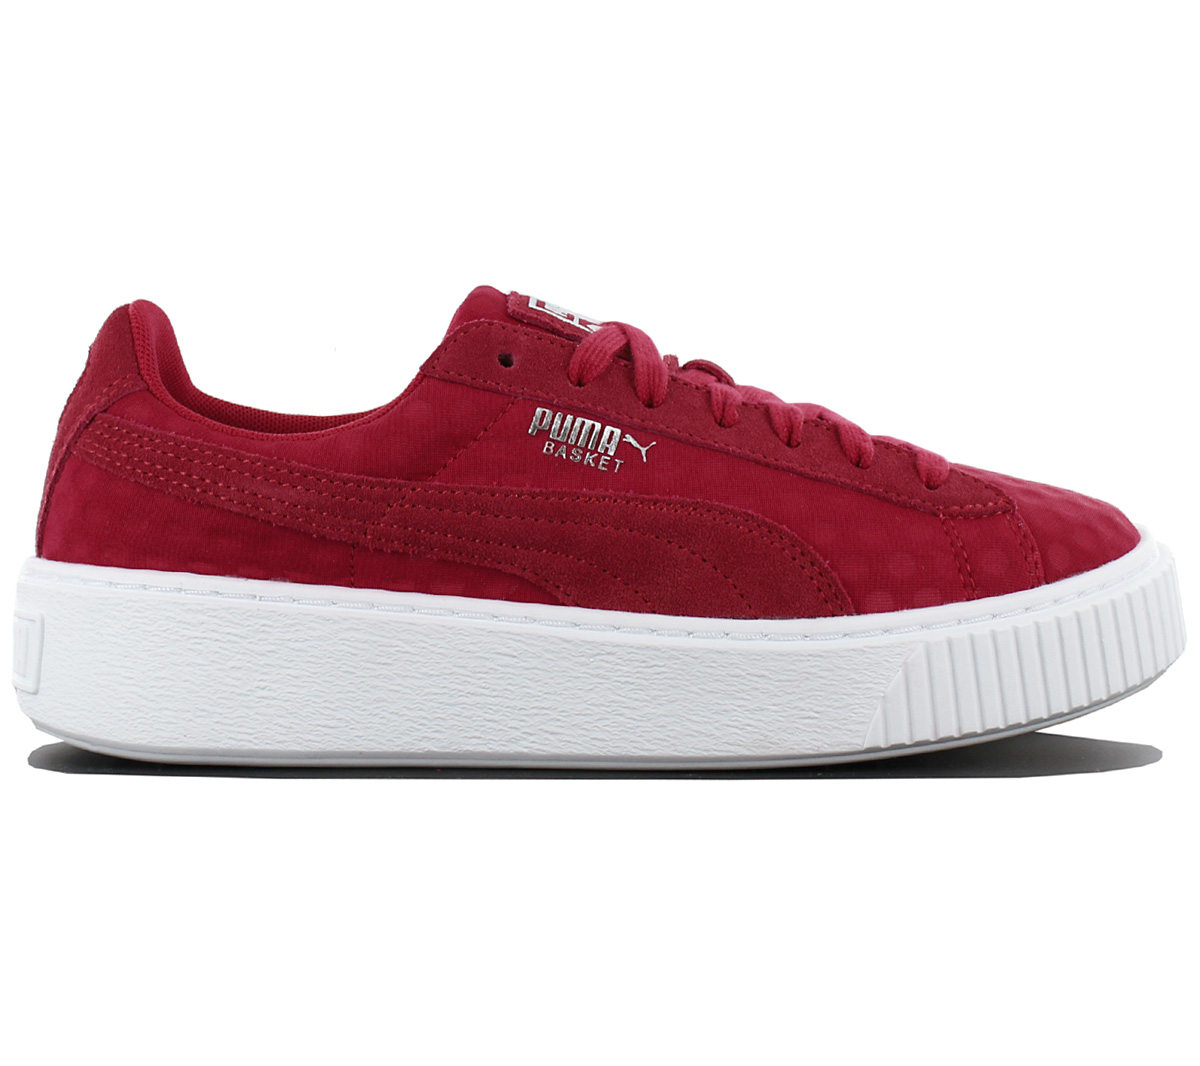 Puma Basket Platform Ladies Sneaker Shoes Red Sneakers Leisure ... d212e4abe